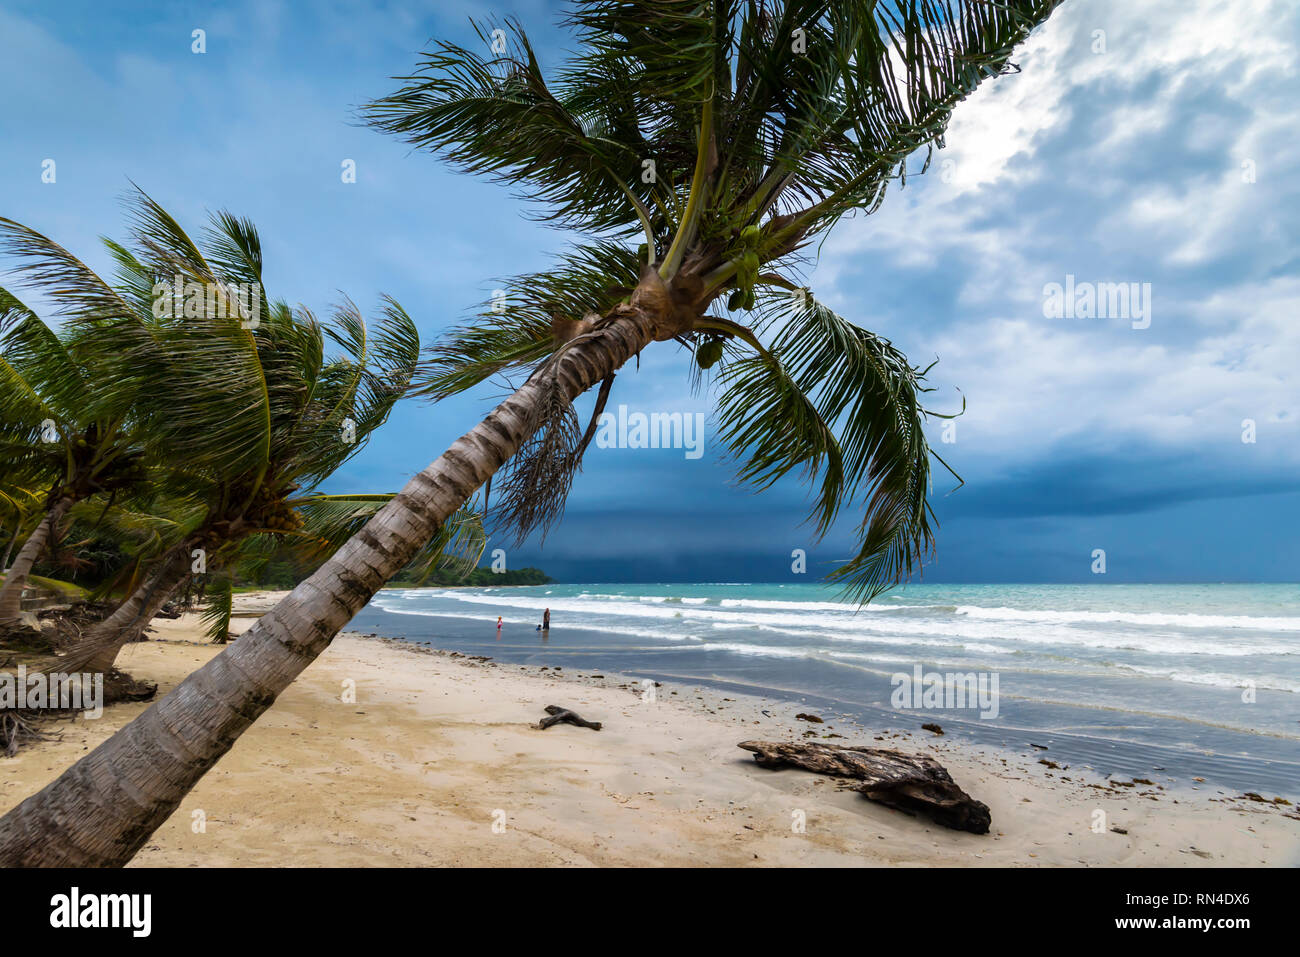 Labuan beach - Stock Image